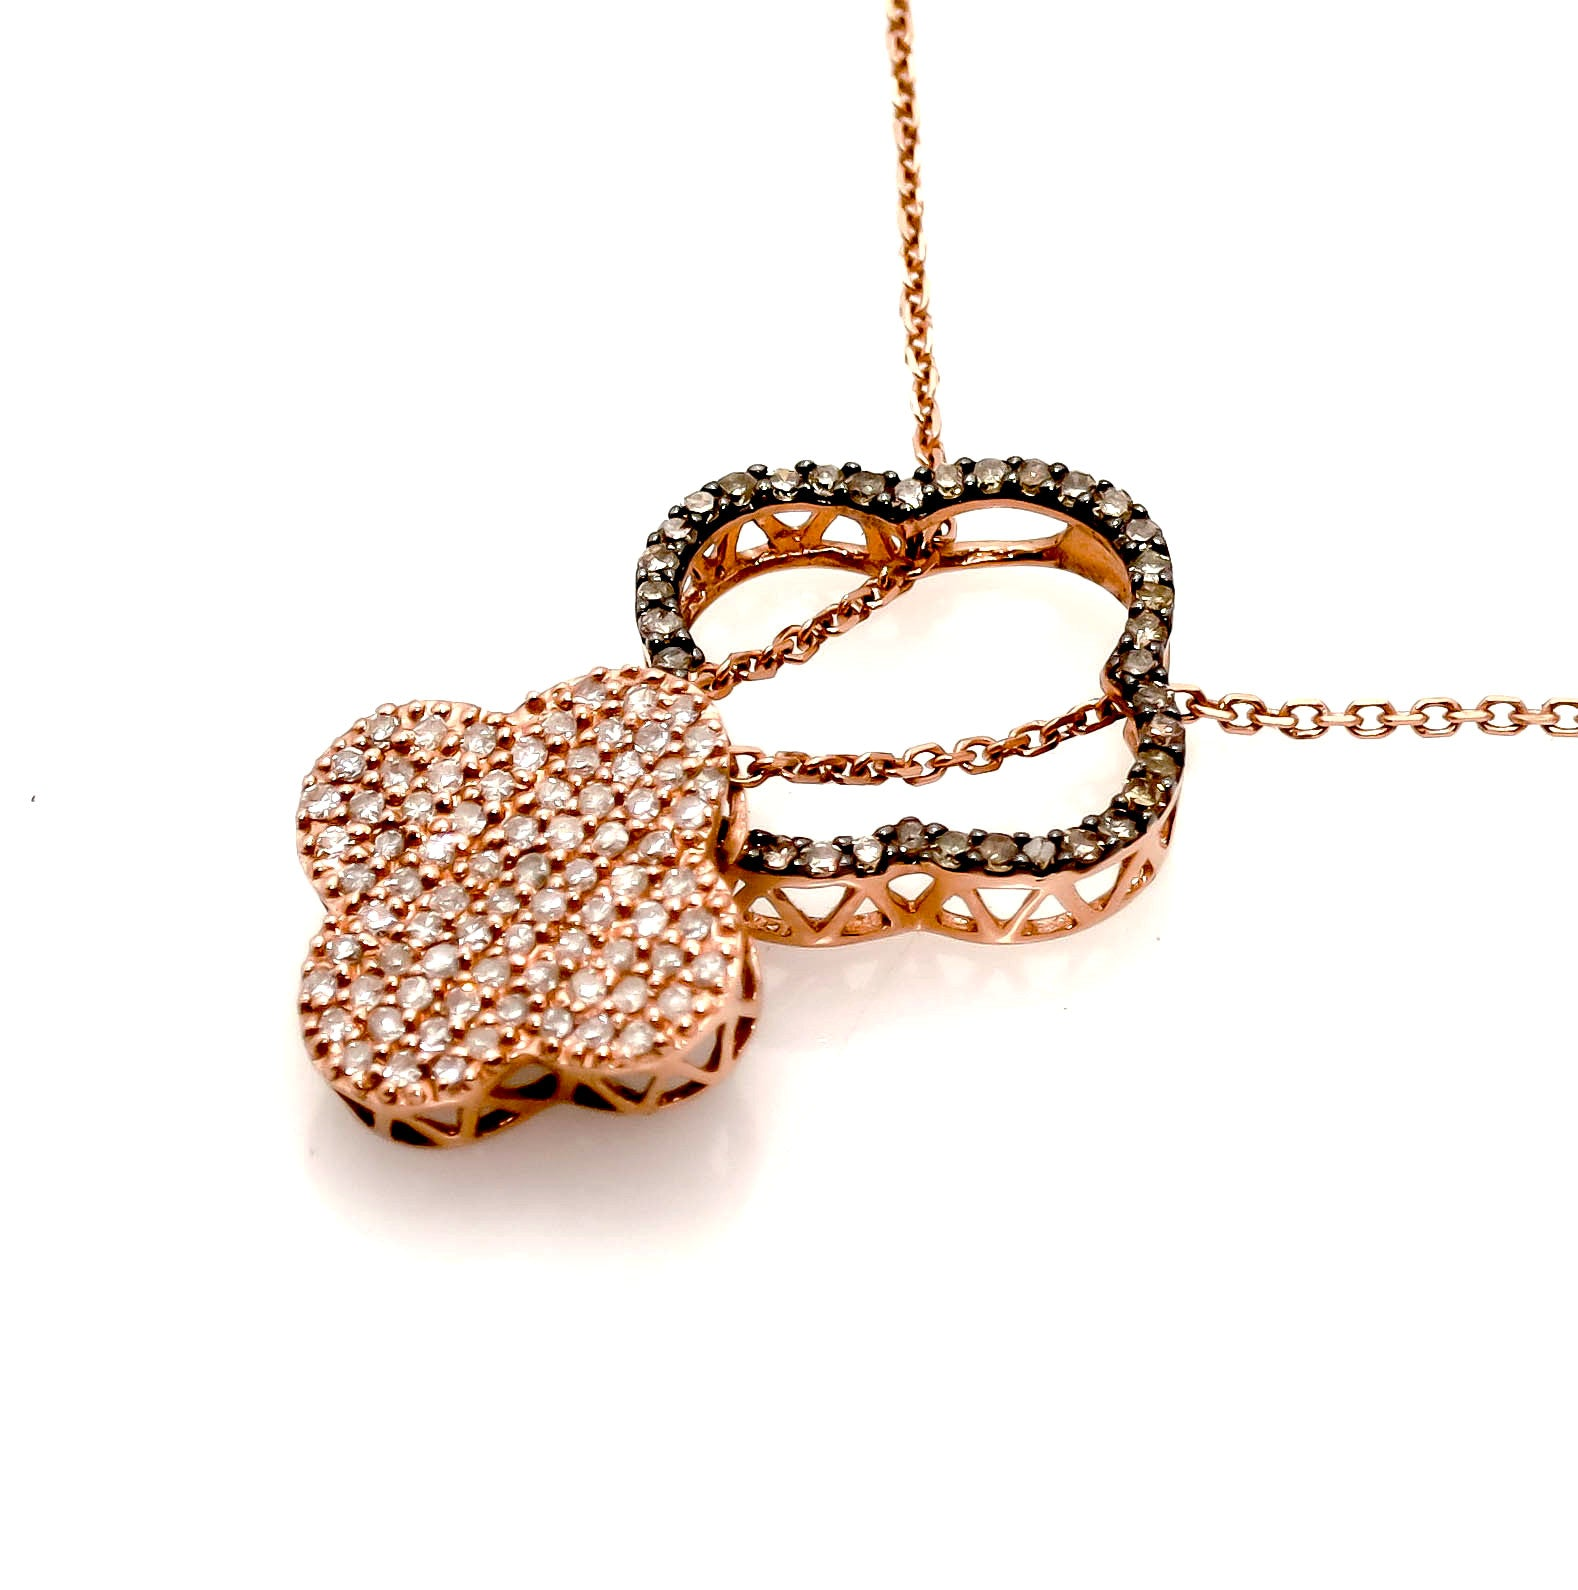 14k Rose Gold White & Chocolate Diamond Clover Necklace/Pendant - DPC001